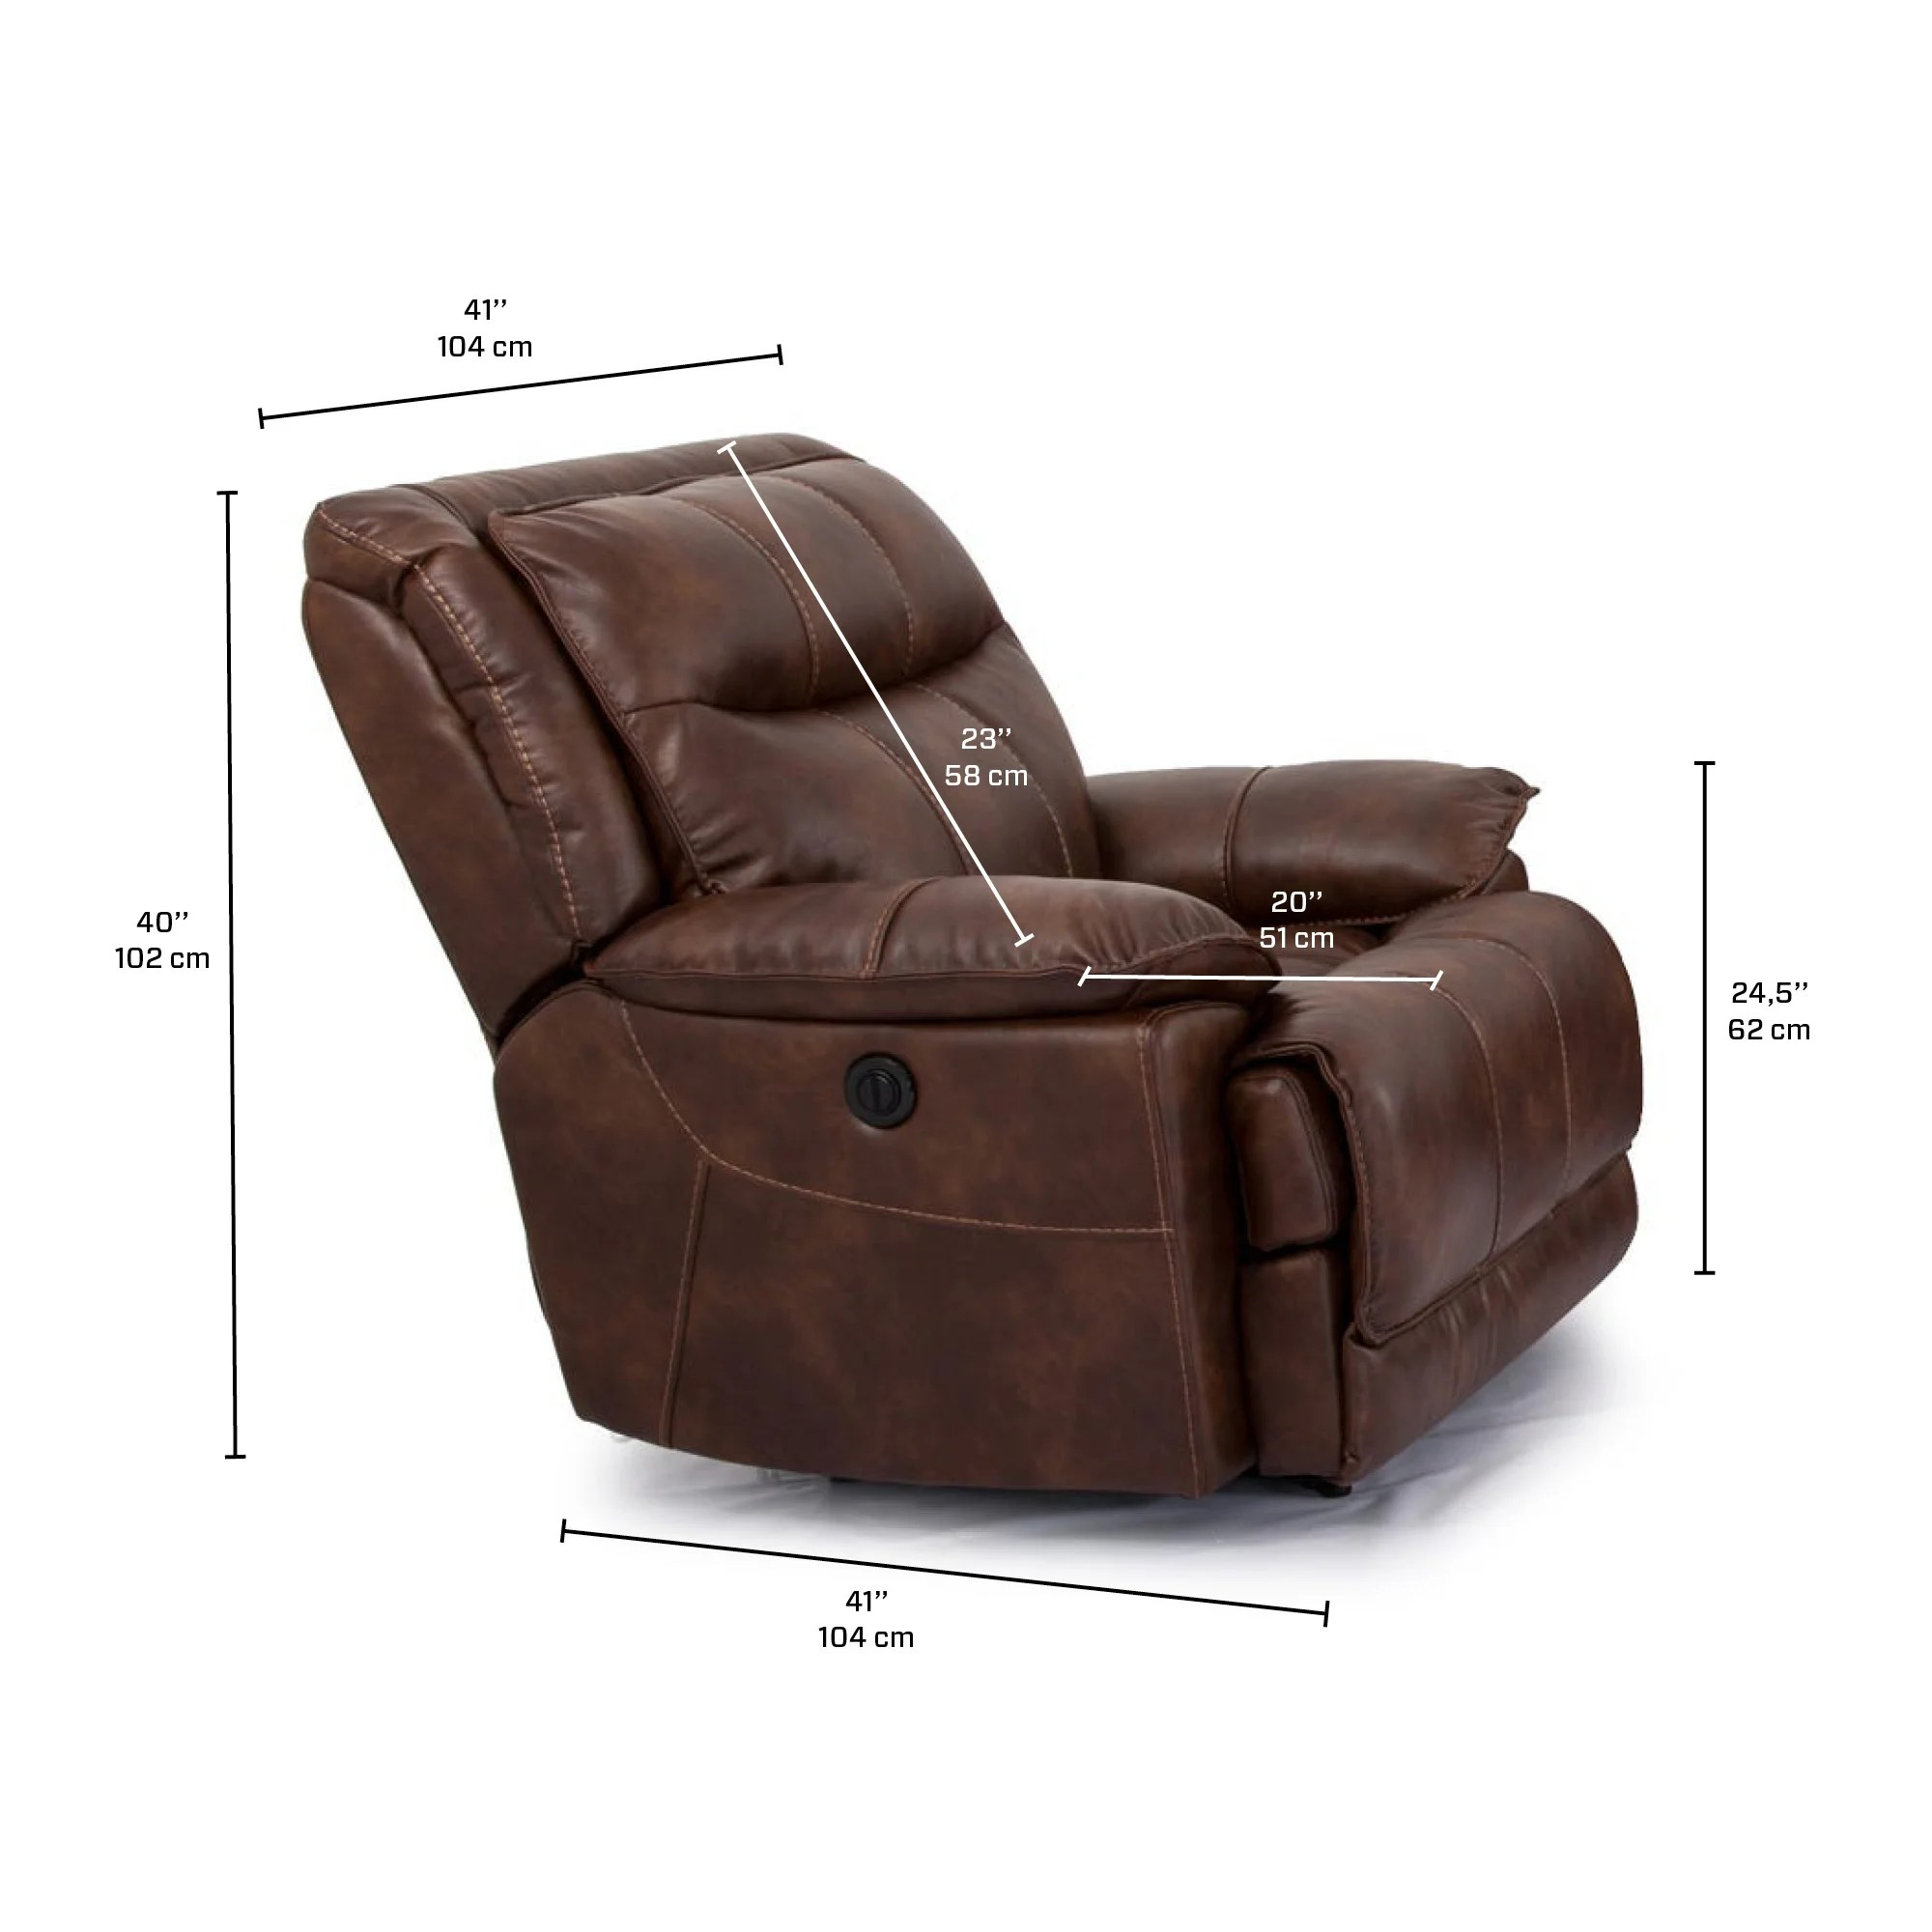 Fauteuil Bercant Inclinable Meubles Rd